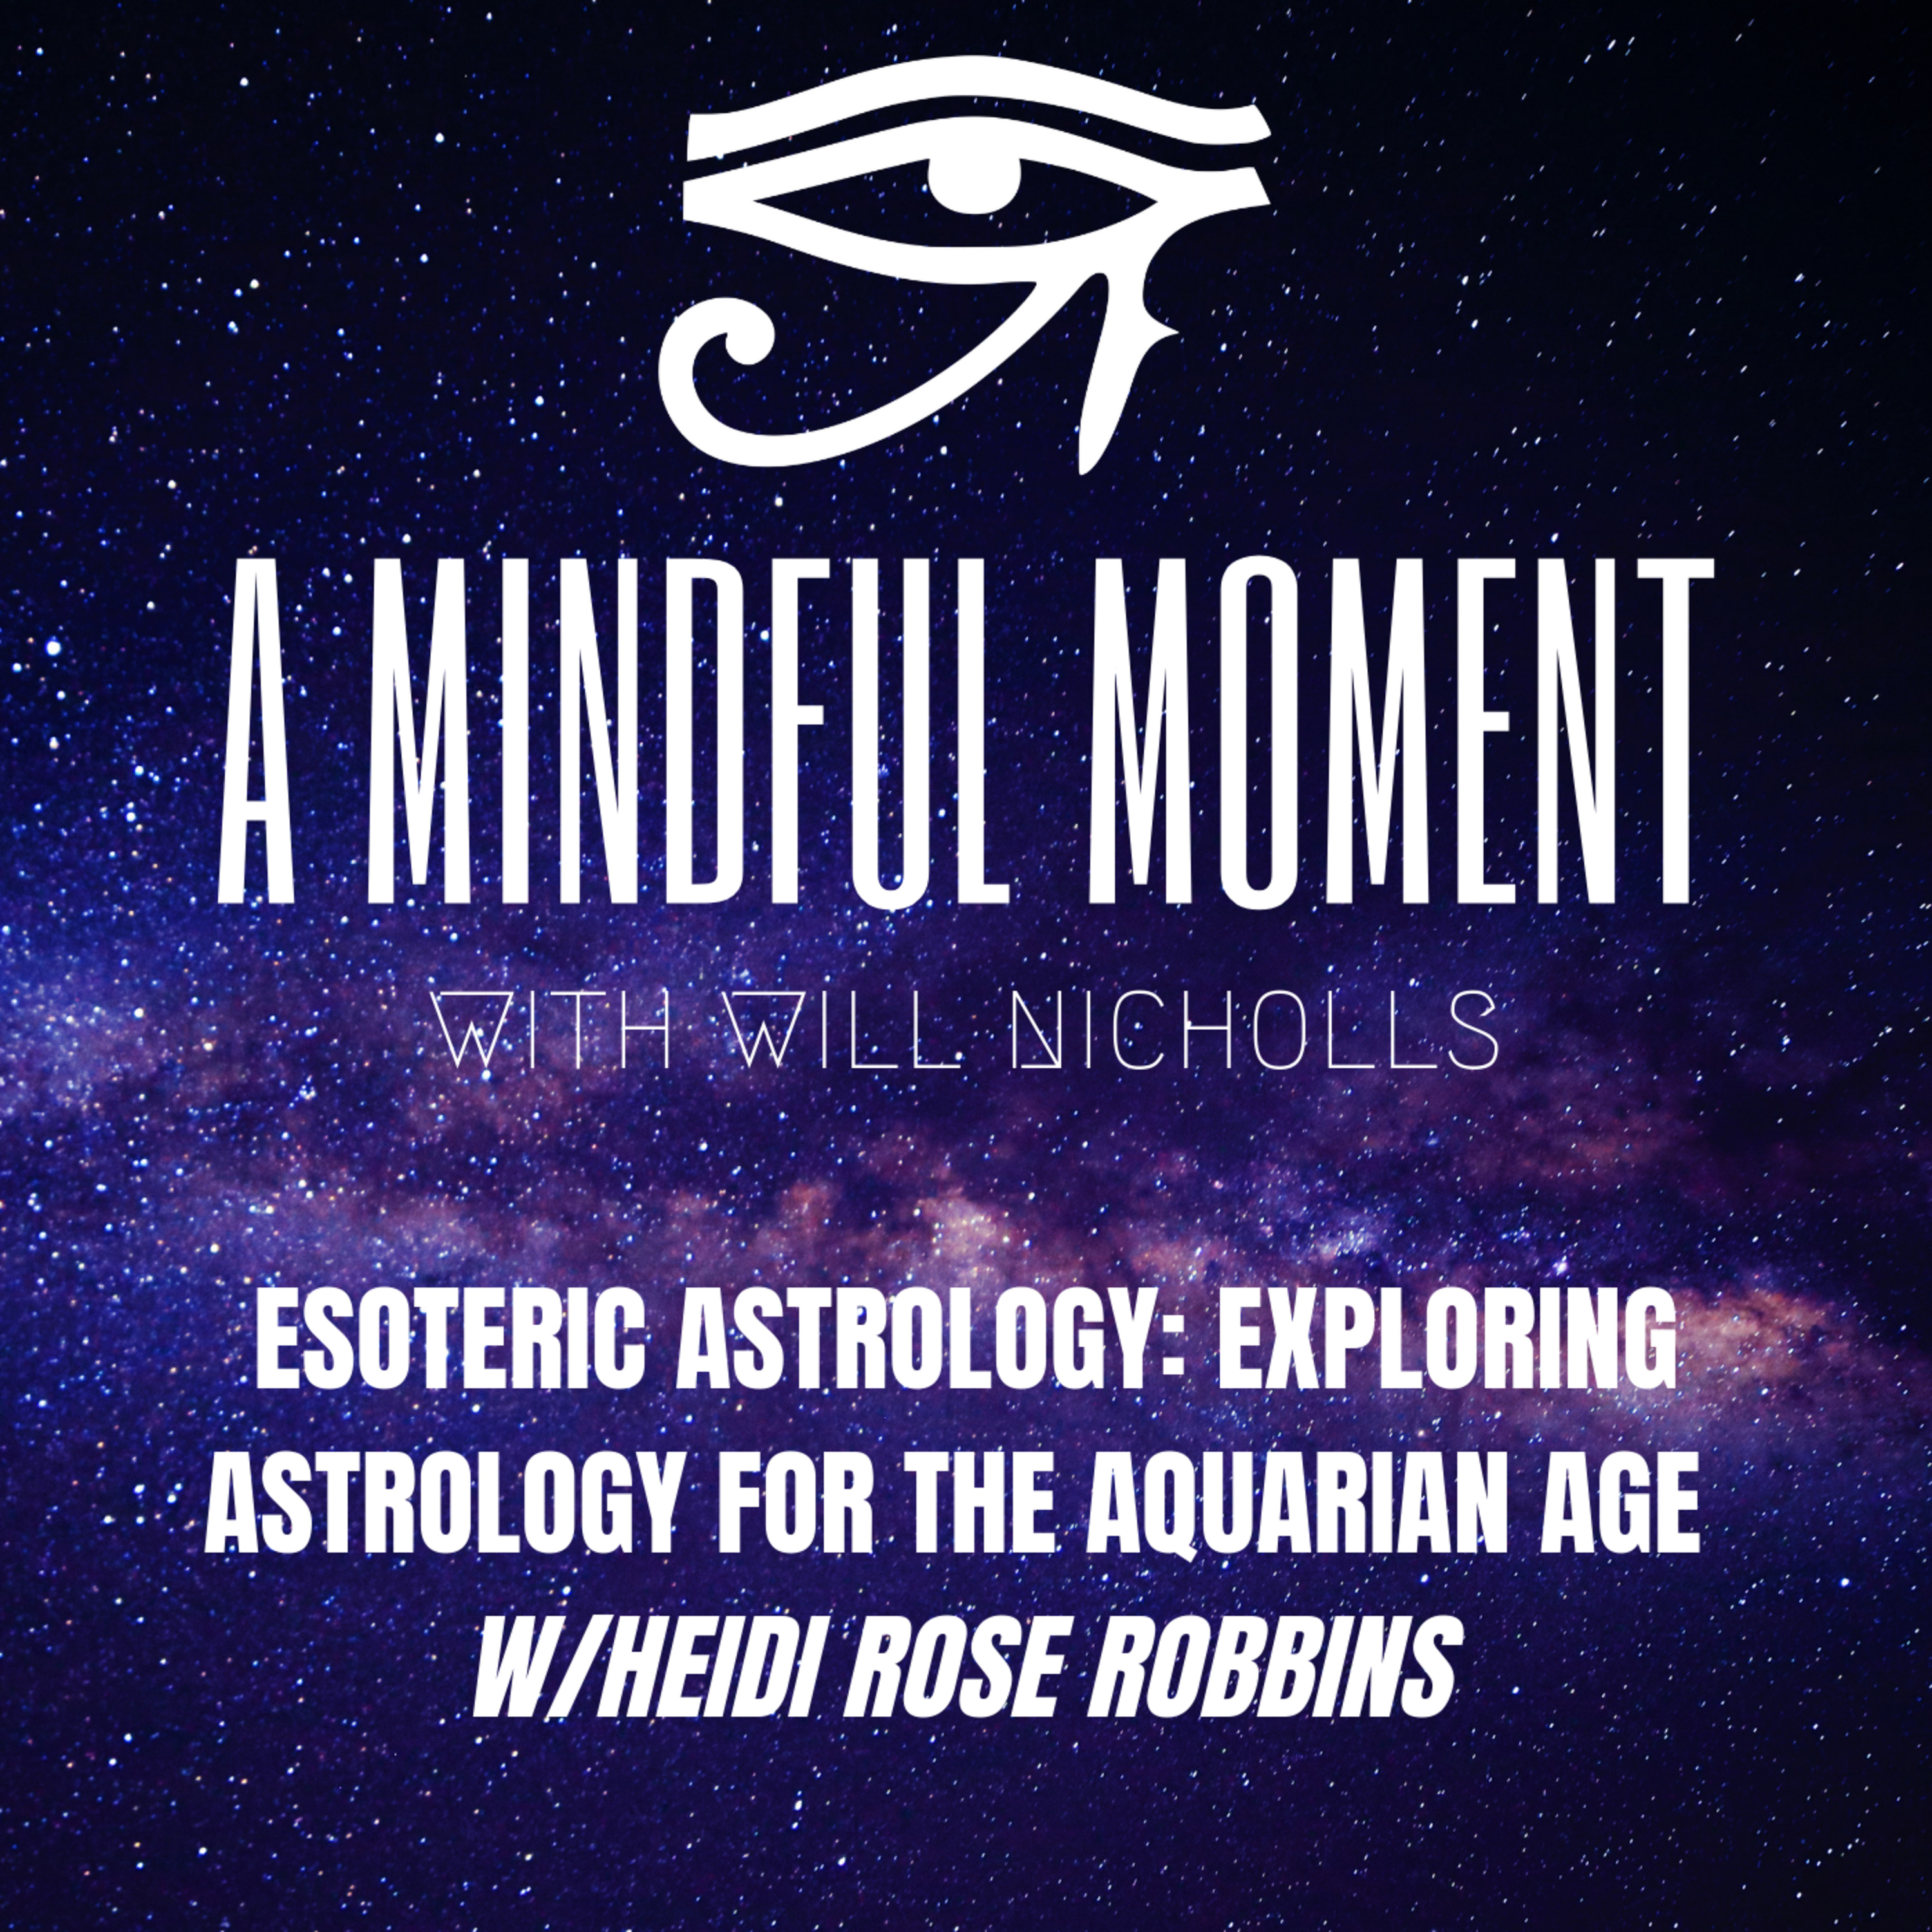 Esoteric Taurus: Your Key To Relationship.